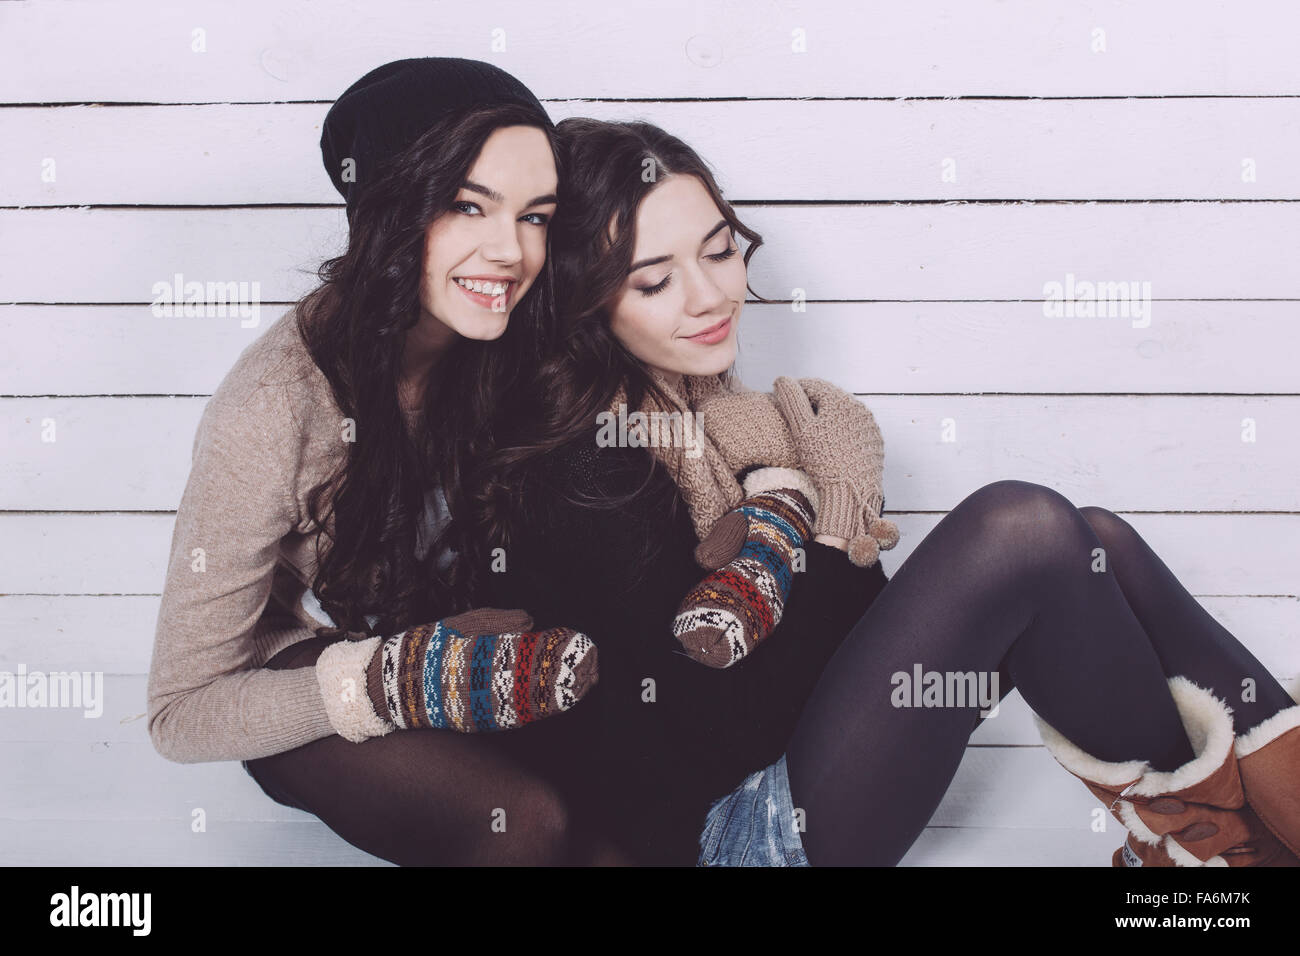 Cute girl embraced - Stock Image